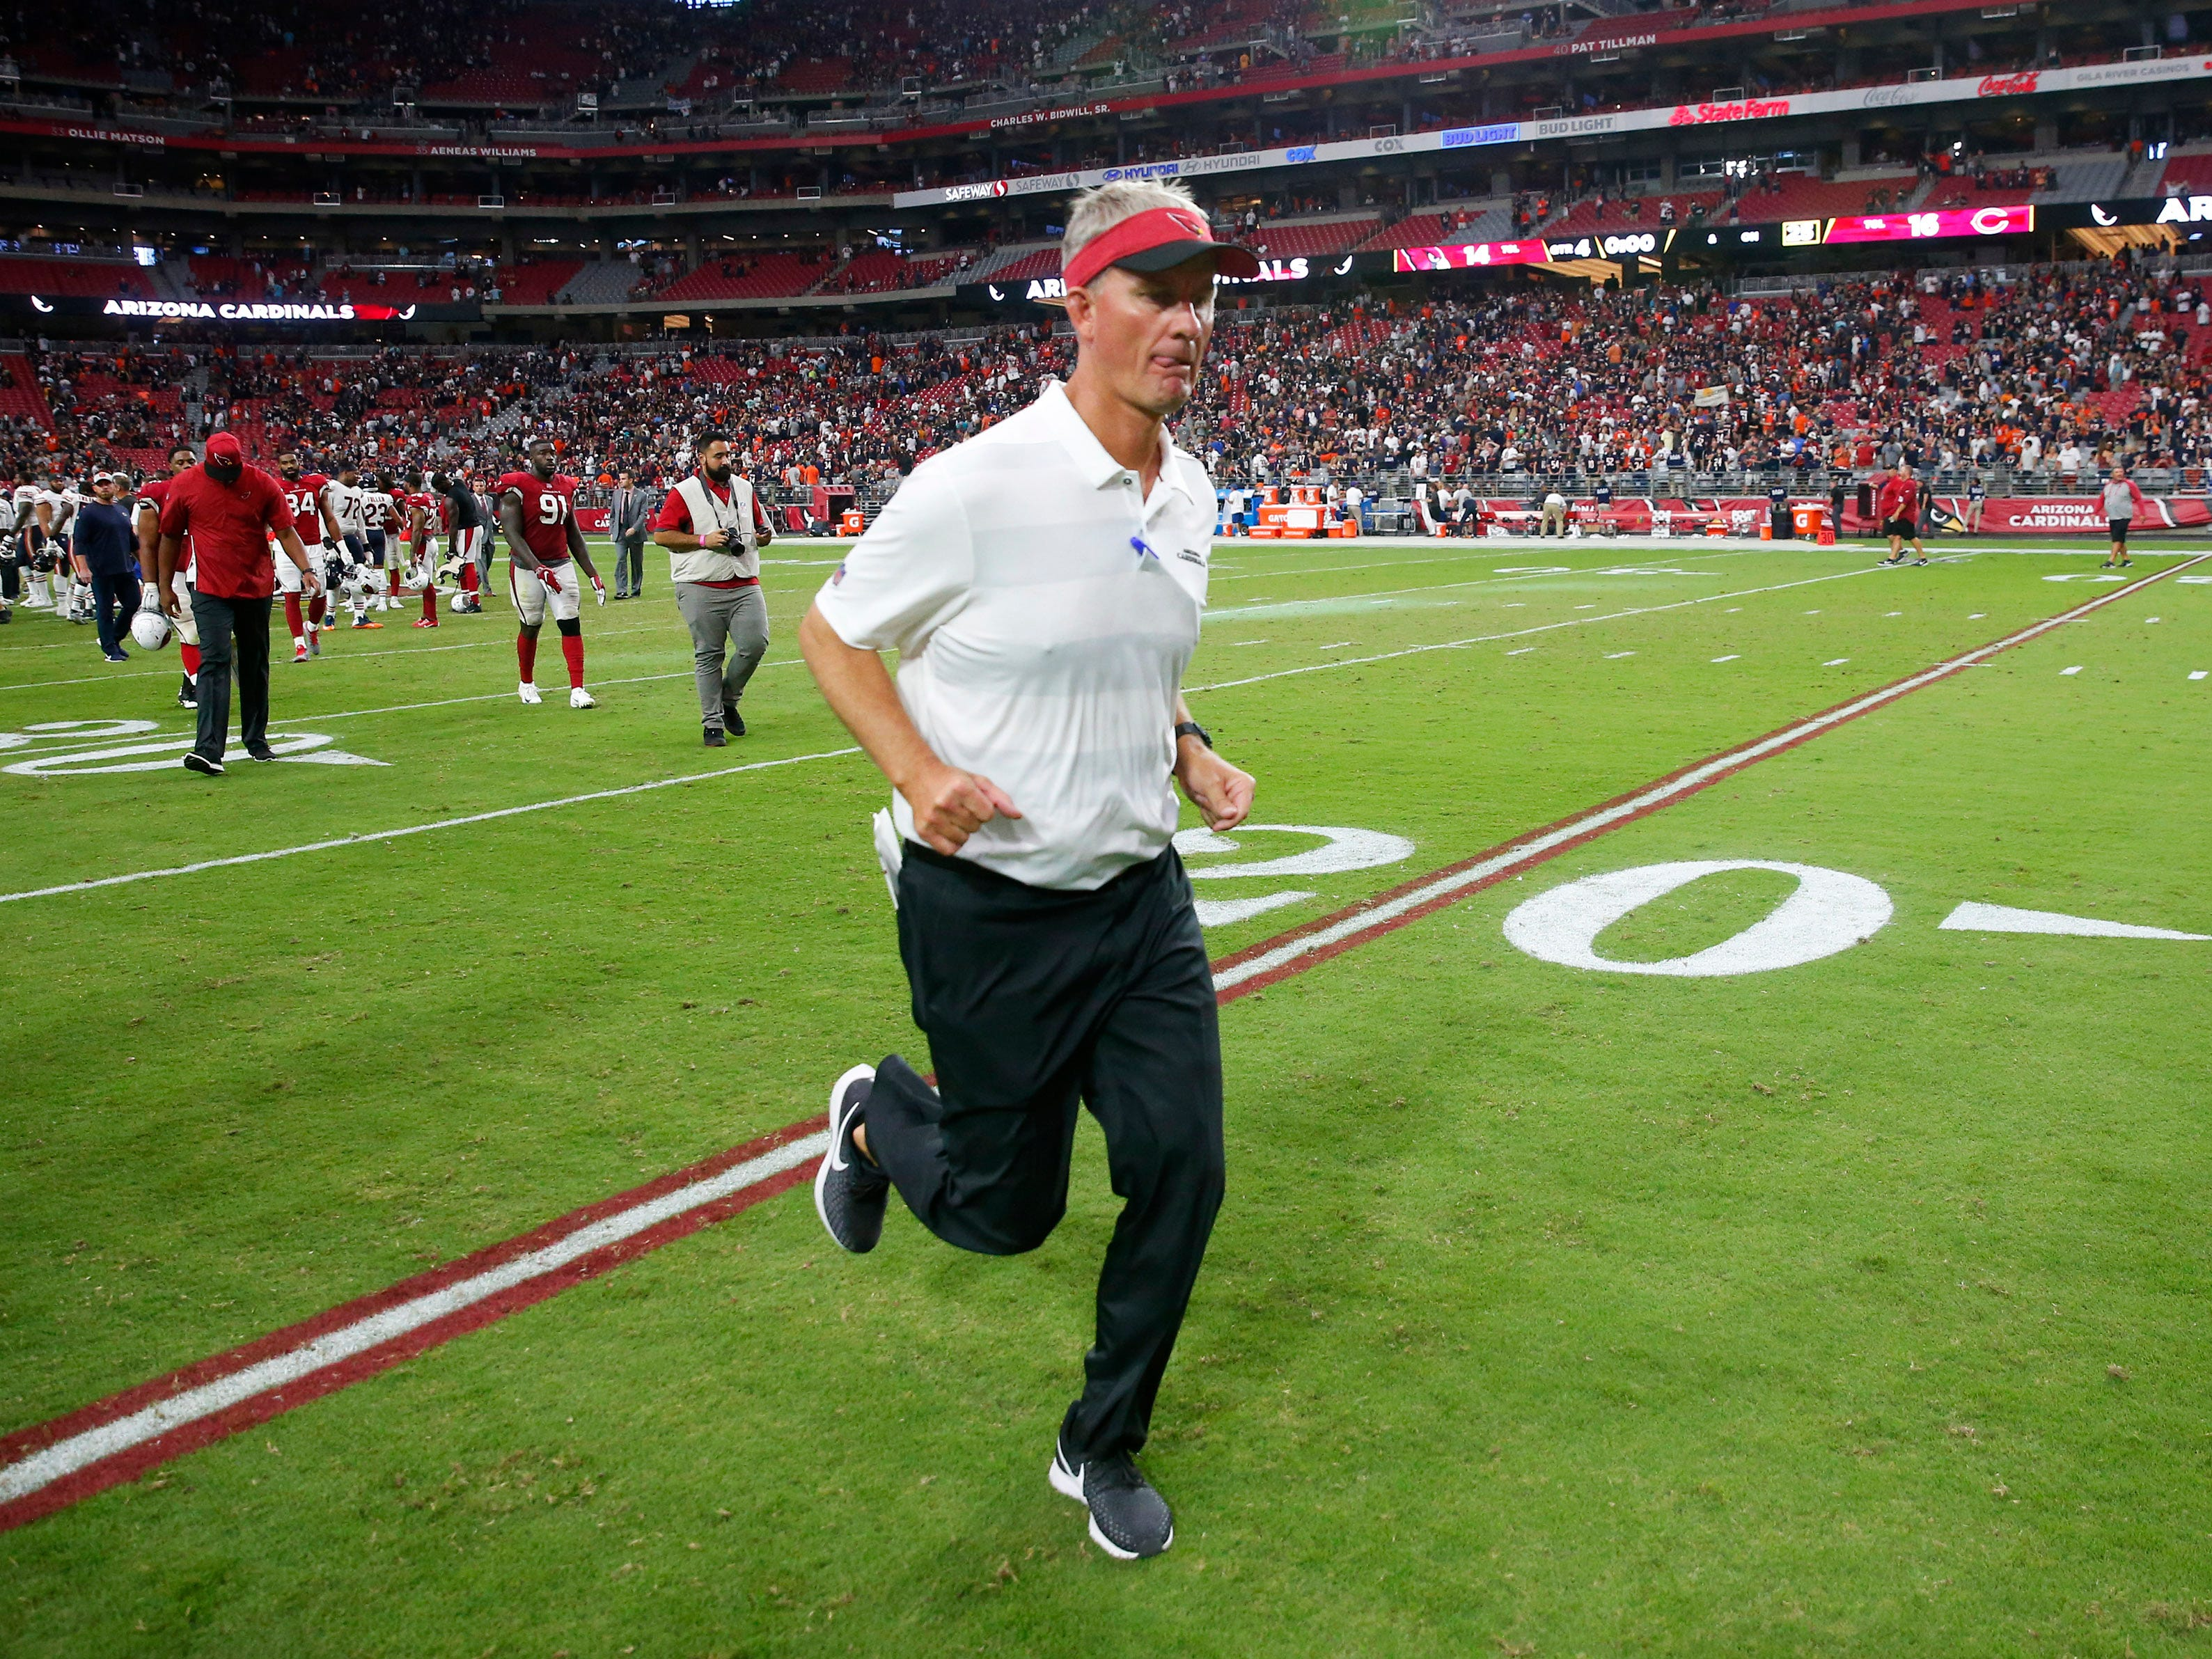 Arizona Cardinals offensive coordinator Mike McCoy runs off the field after losing the the Chicago Bears 16-14 at State Farm Stadium in Glendale, Ariz. September 23, 2018.